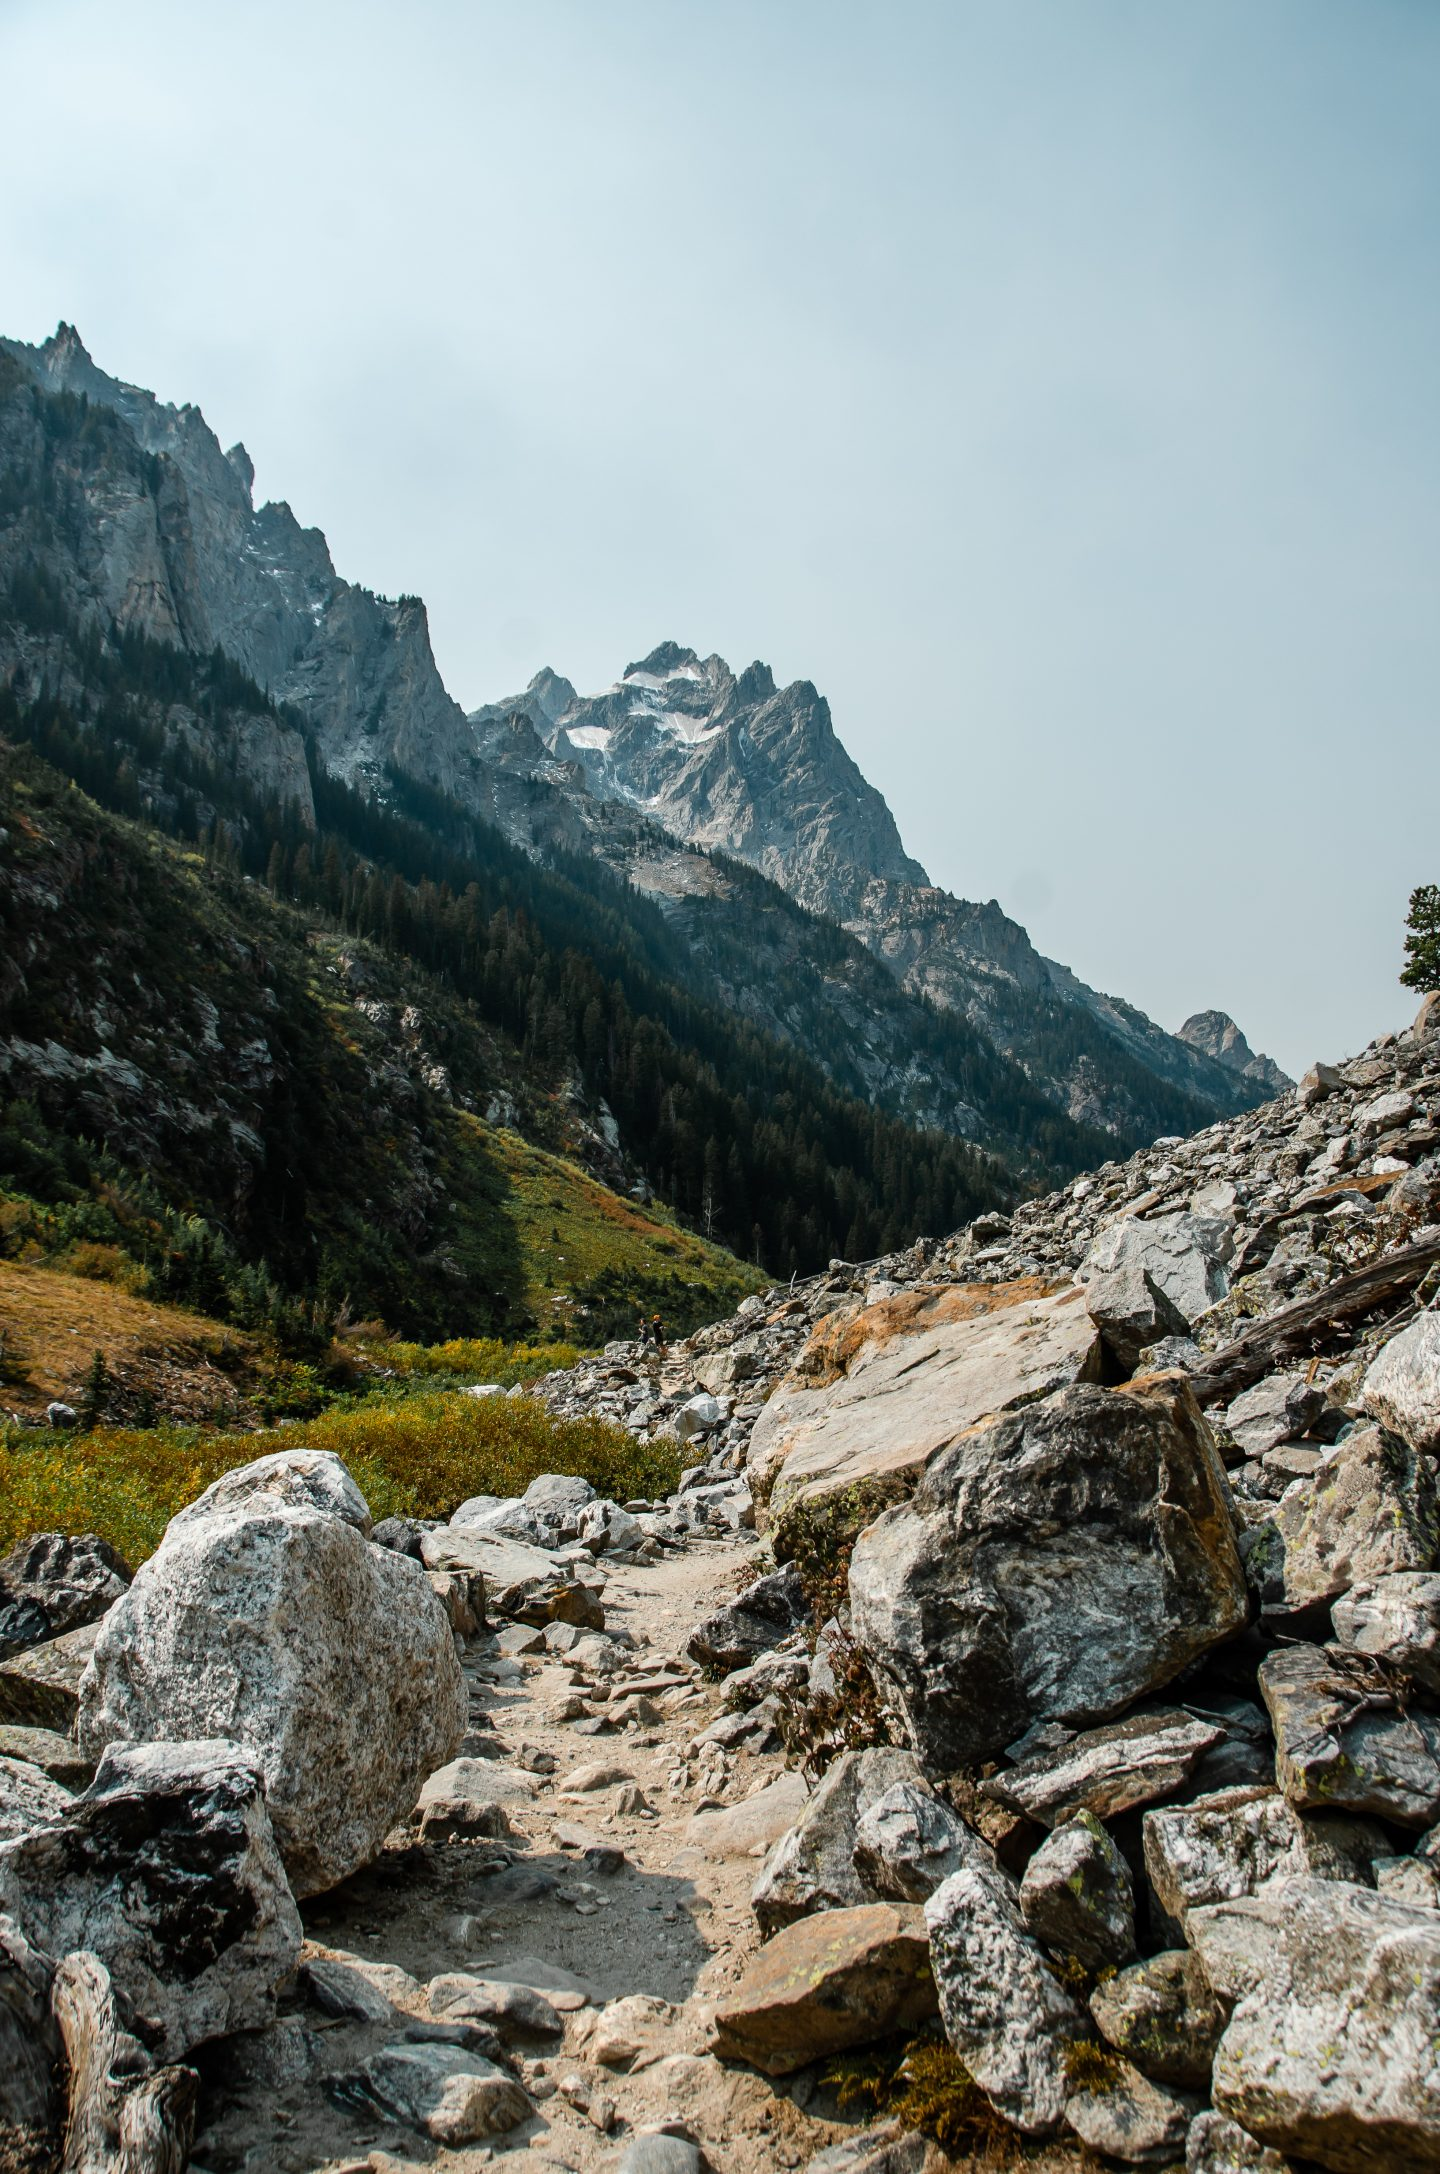 Hiking in Cascade Canyon in Grand Teton National Park